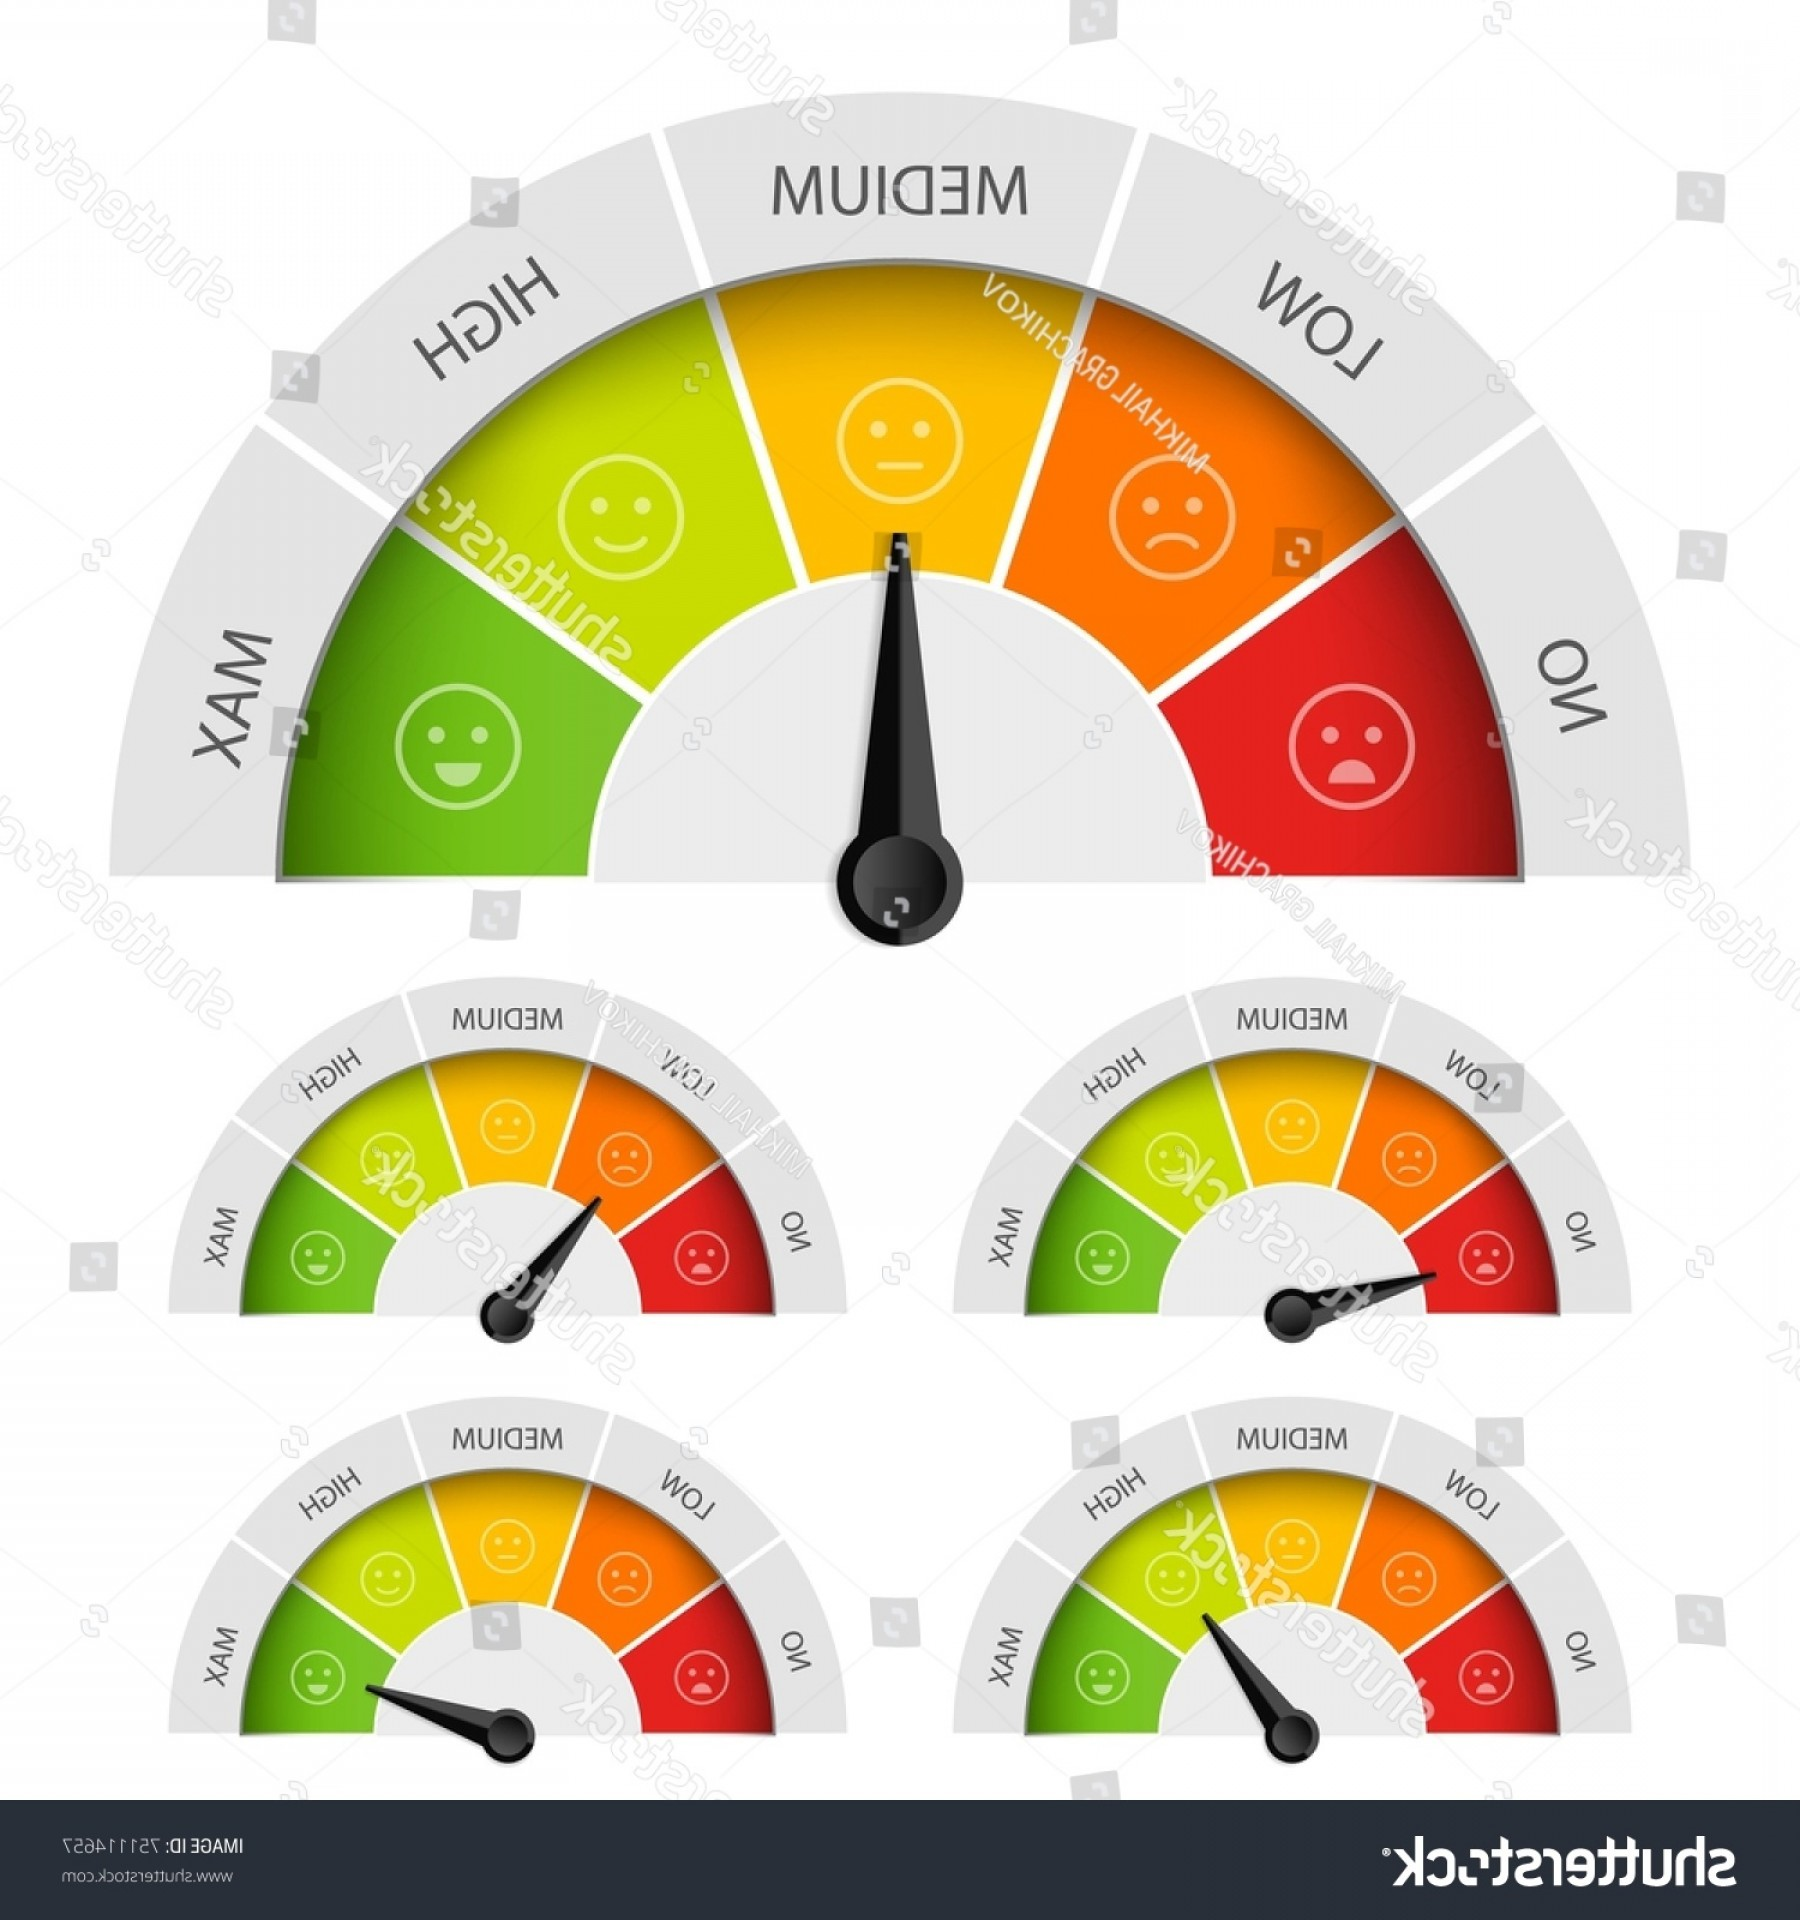 Low High Meter Vector: Creative Vector Illustration Rating Customer Satisfaction